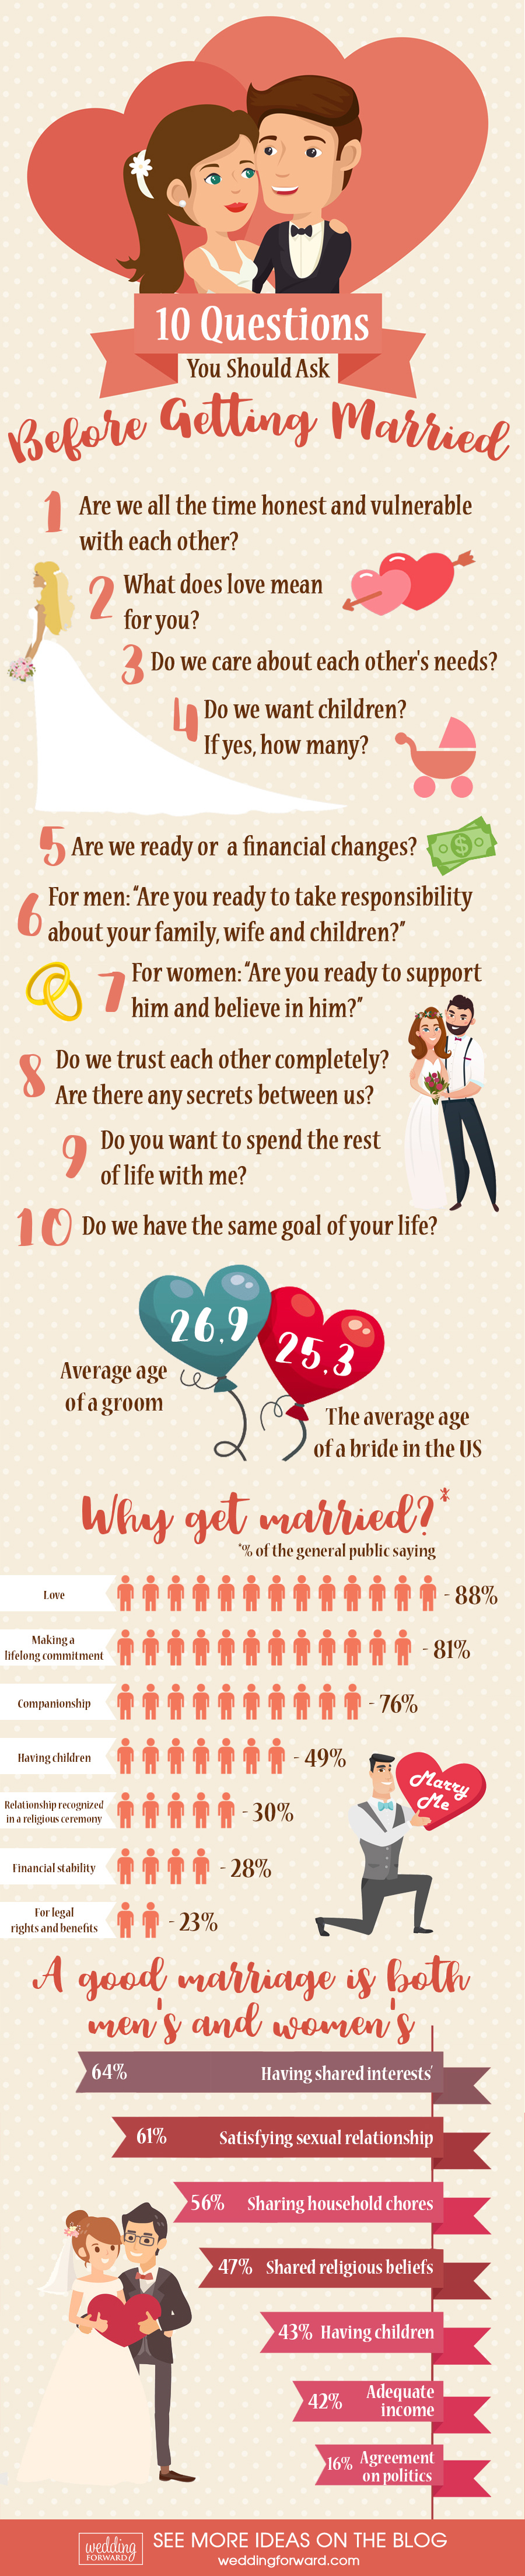 when to get married 10 questions you should ask before getting married